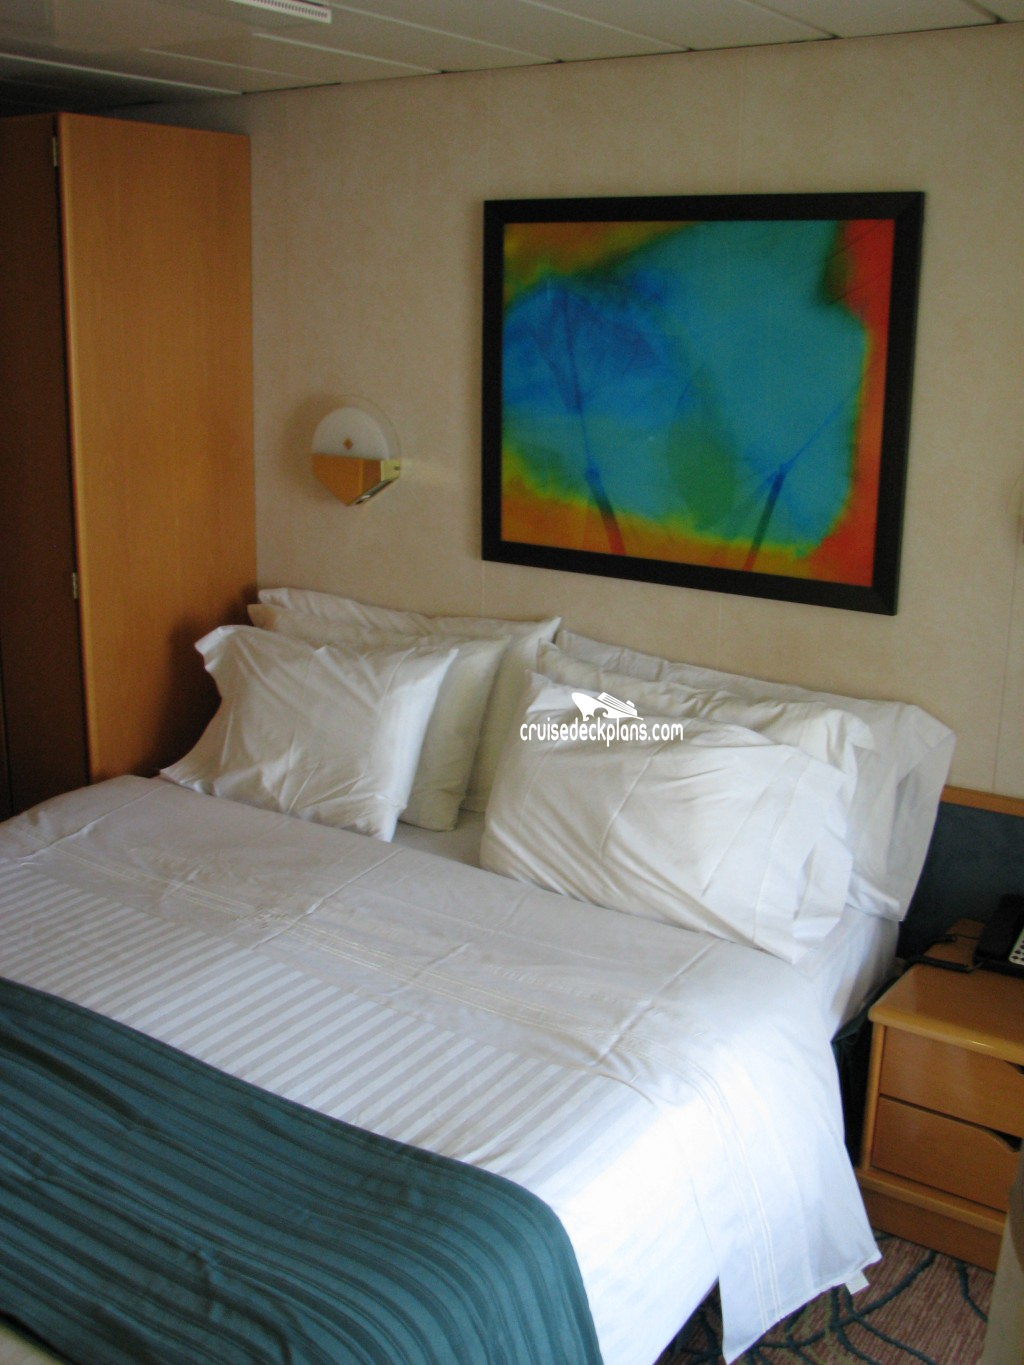 2 Bedroom Suite Mandalay Bay: Enchantment Of The Seas Grand Suite